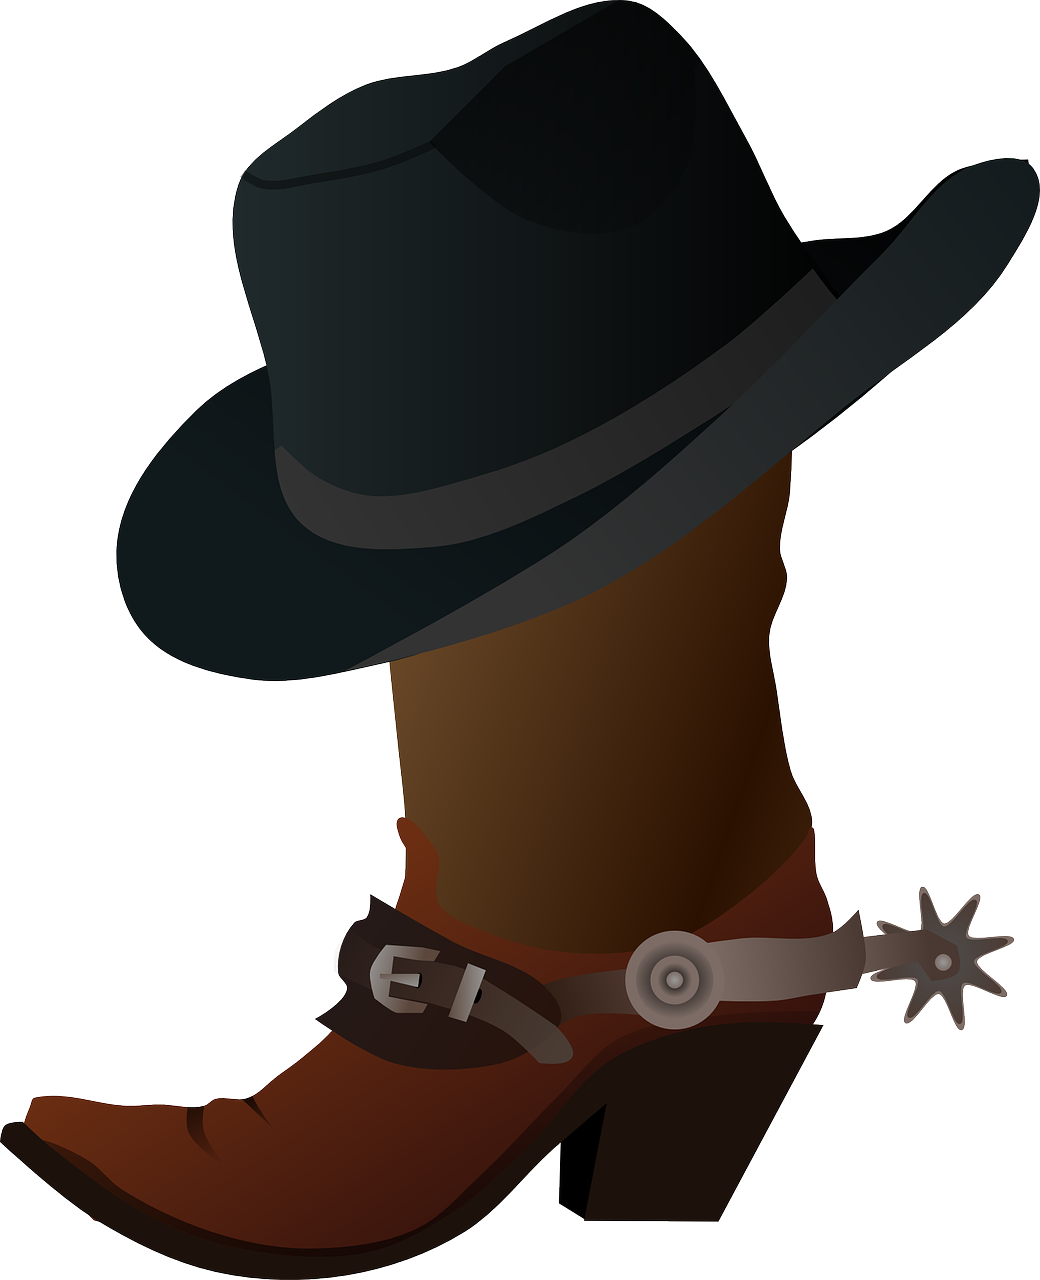 Free commercial use cowboy spurs clipart. Image on pixabay boots